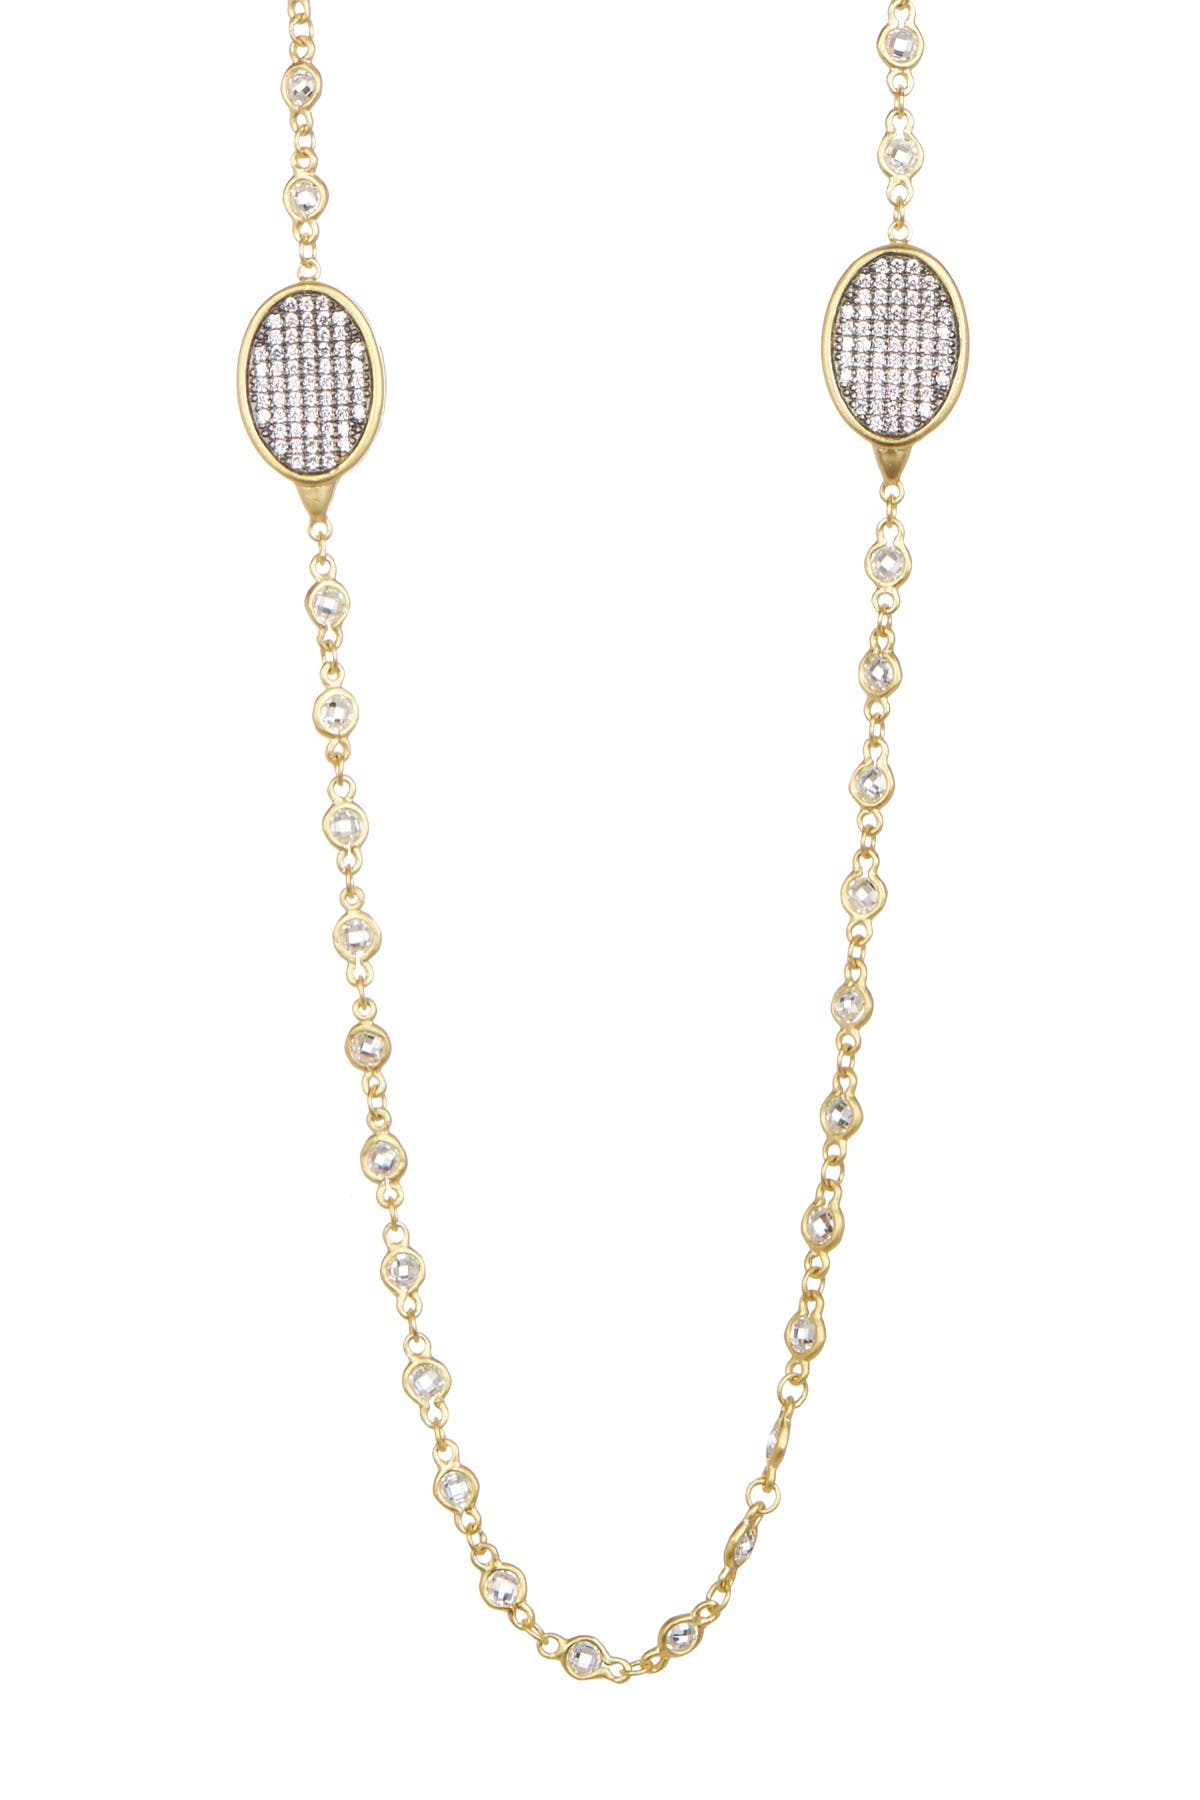 Image of Freida Rothman 14K Gold Plated Sterling Silver CZ Contemporary Deco Marquise Station Necklace